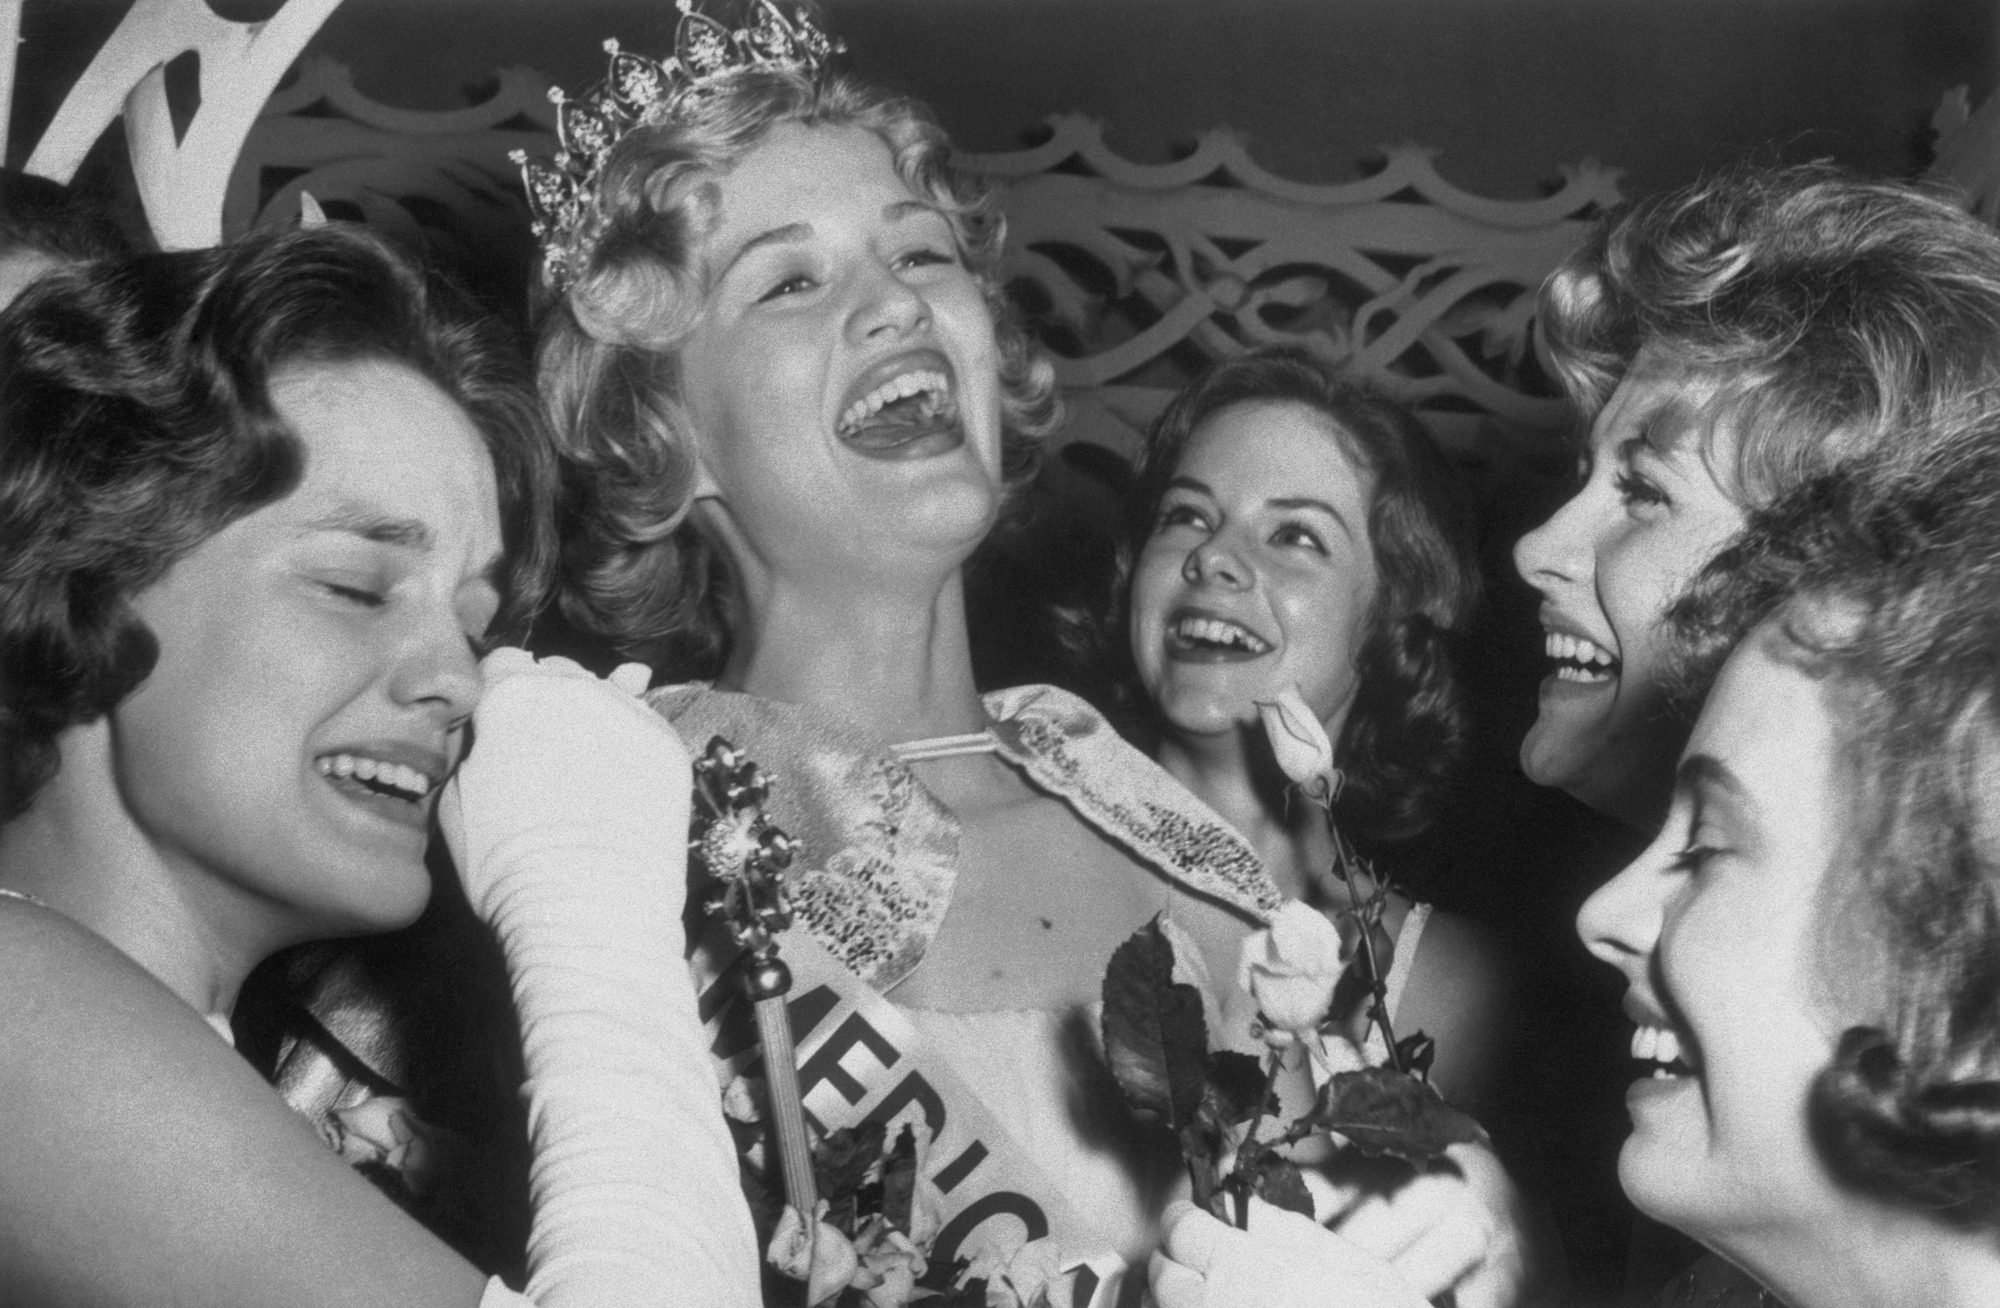 Junior Miss Kentucky 1963 Laughing and Crying with Friends